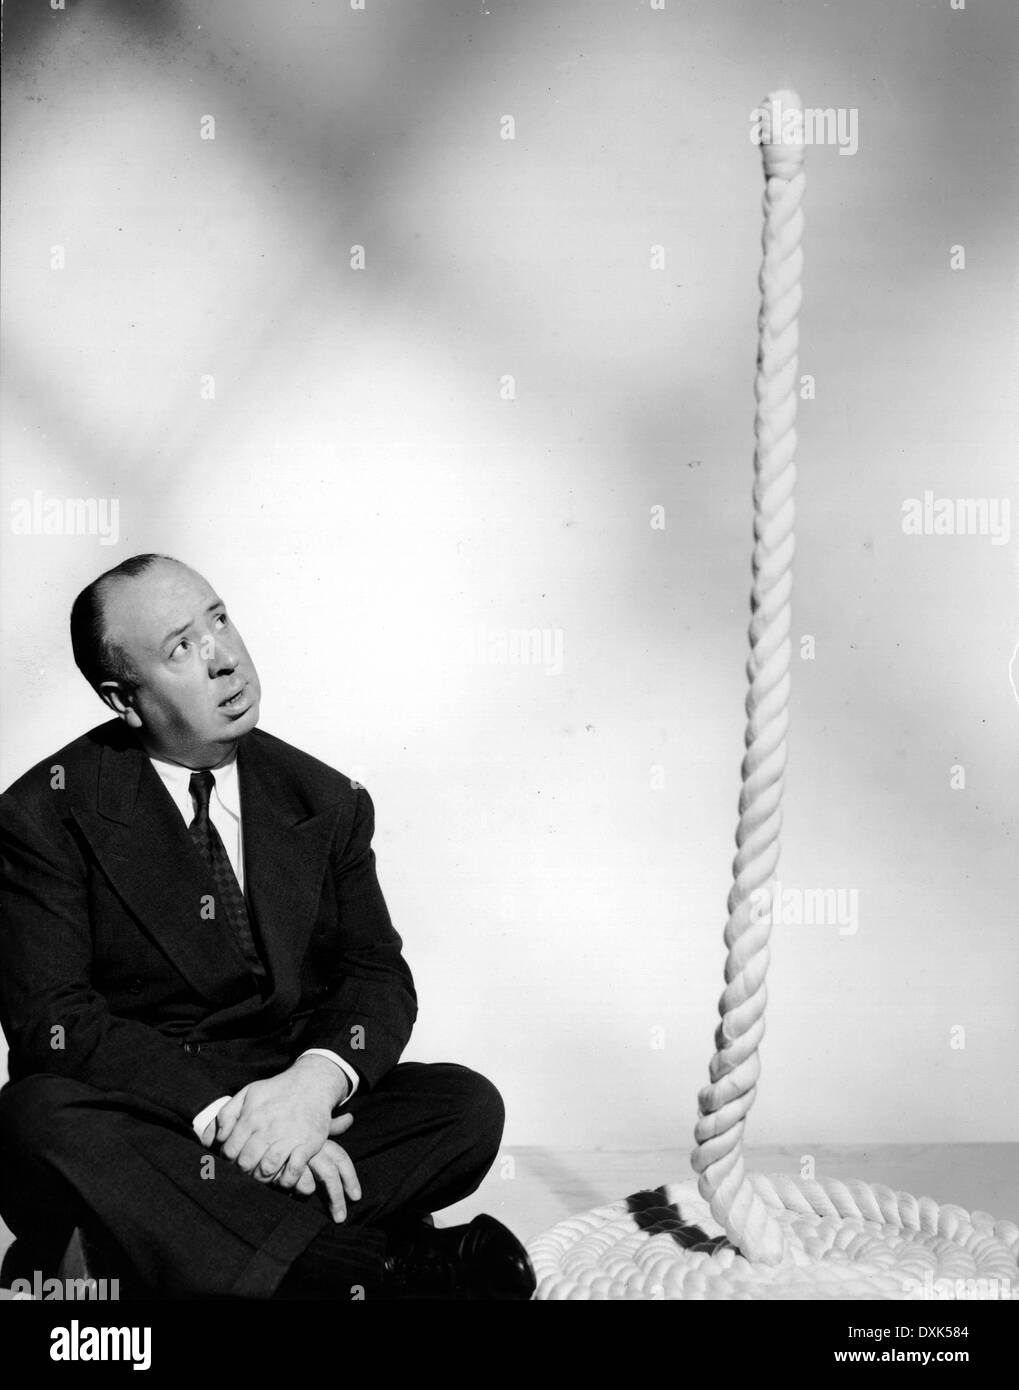 PUBLICITY PHOTO OF DIRECTOR ALFRED HITCHCOCK FOR HIS FILM RO - Stock Image